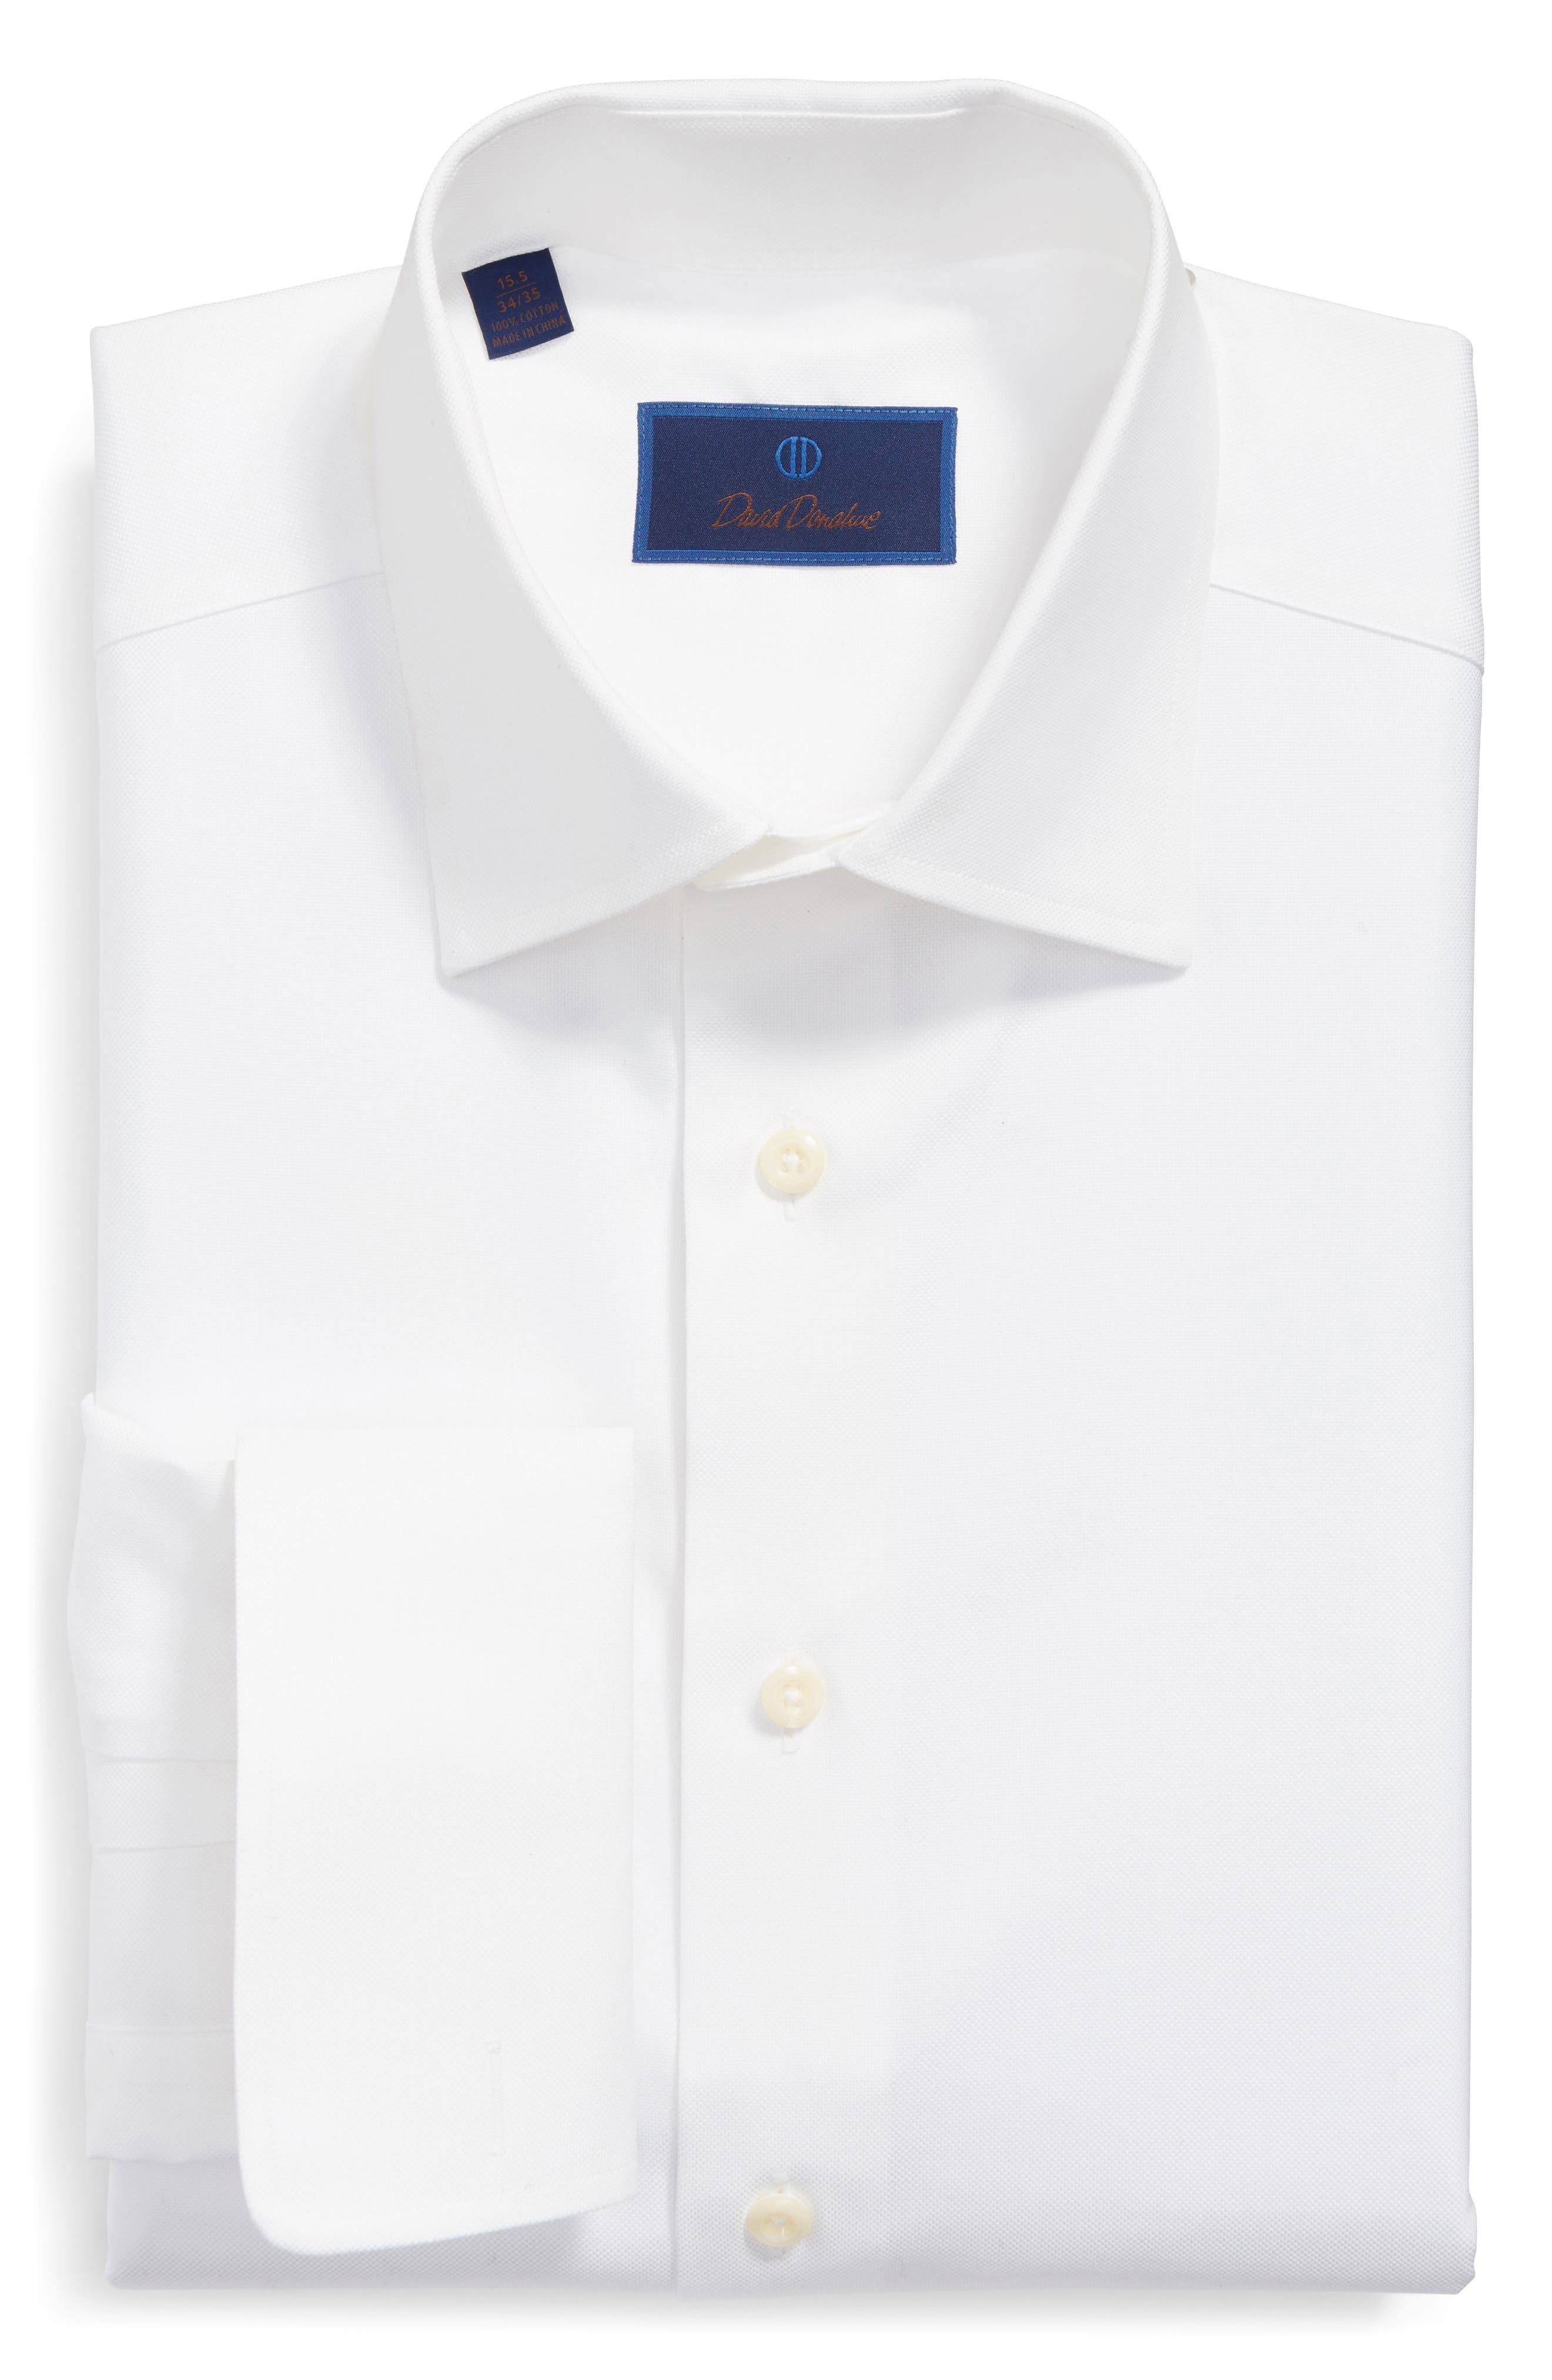 Regular Fit Texture French Cuff Dress Shirt,                             Main thumbnail 1, color,                             White